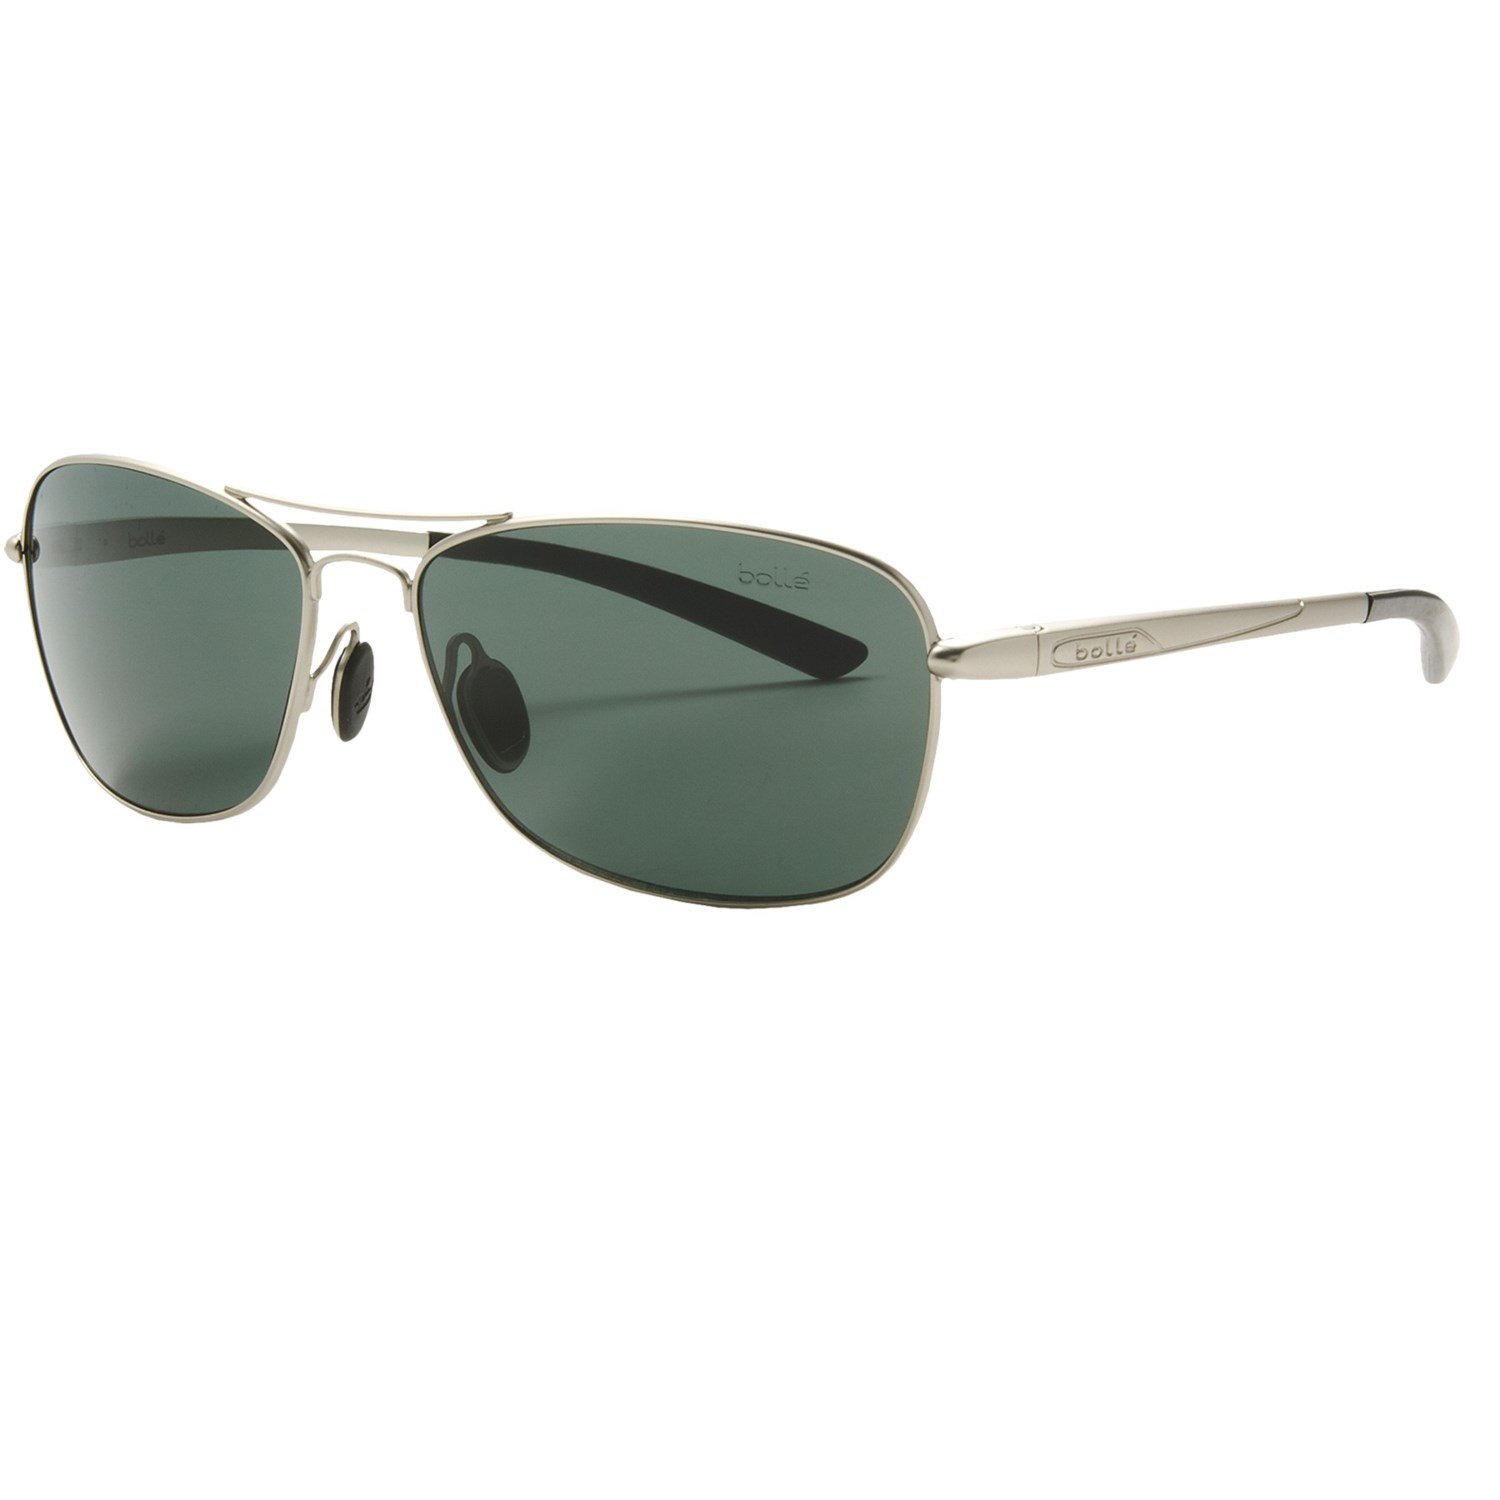 Eyeglass Frames Ventura Ca : USD#Bolle Ventura Sunglasses price - Camping & Hiking Buy